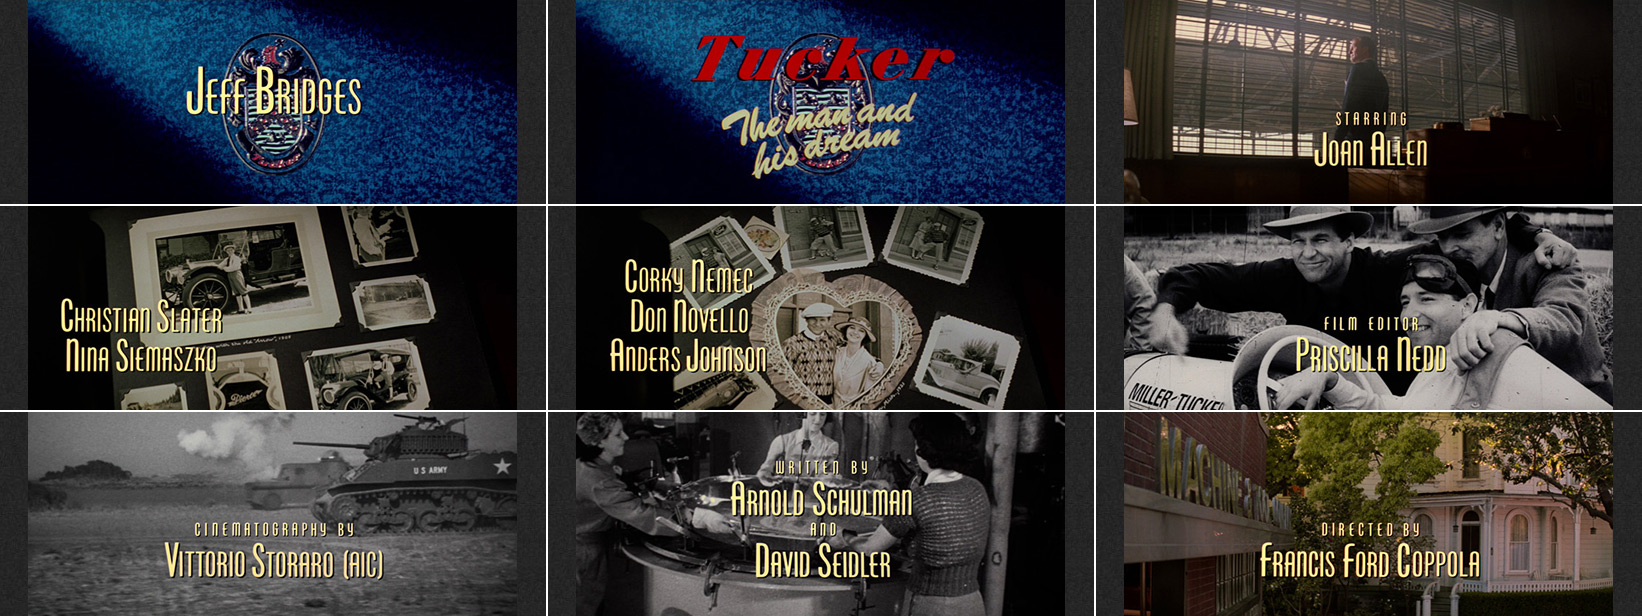 Gary Gutierrez: Tucker: The Man and His Dream (1988) title sequence